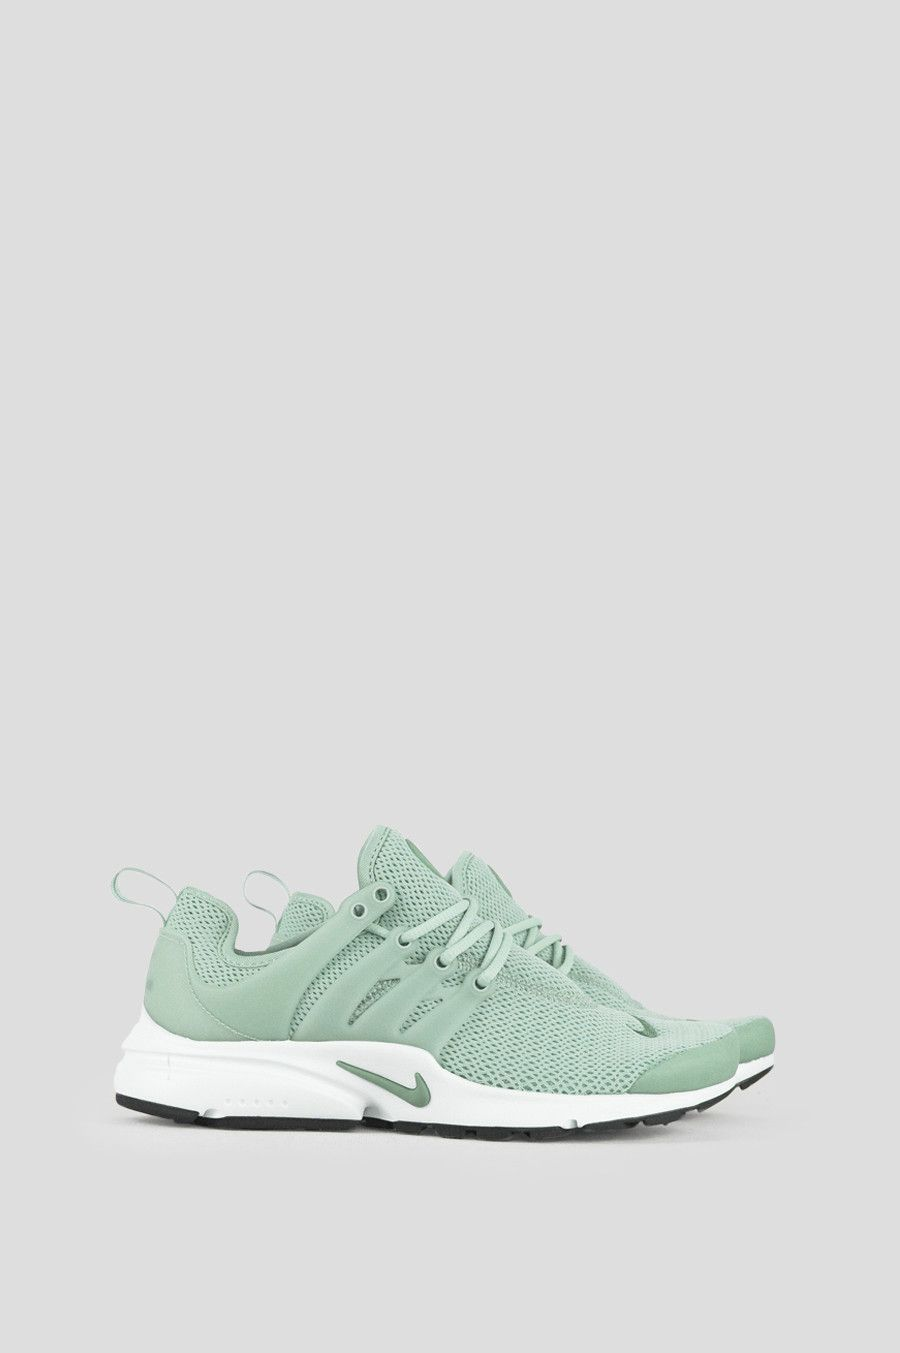 8aed4368e28c The Nike Air Presto Women s Shoe is inspired by the comfort and minimalism  of a classic T-shirt for lightweight everyday comfort. - Product Code   878068-300 ...